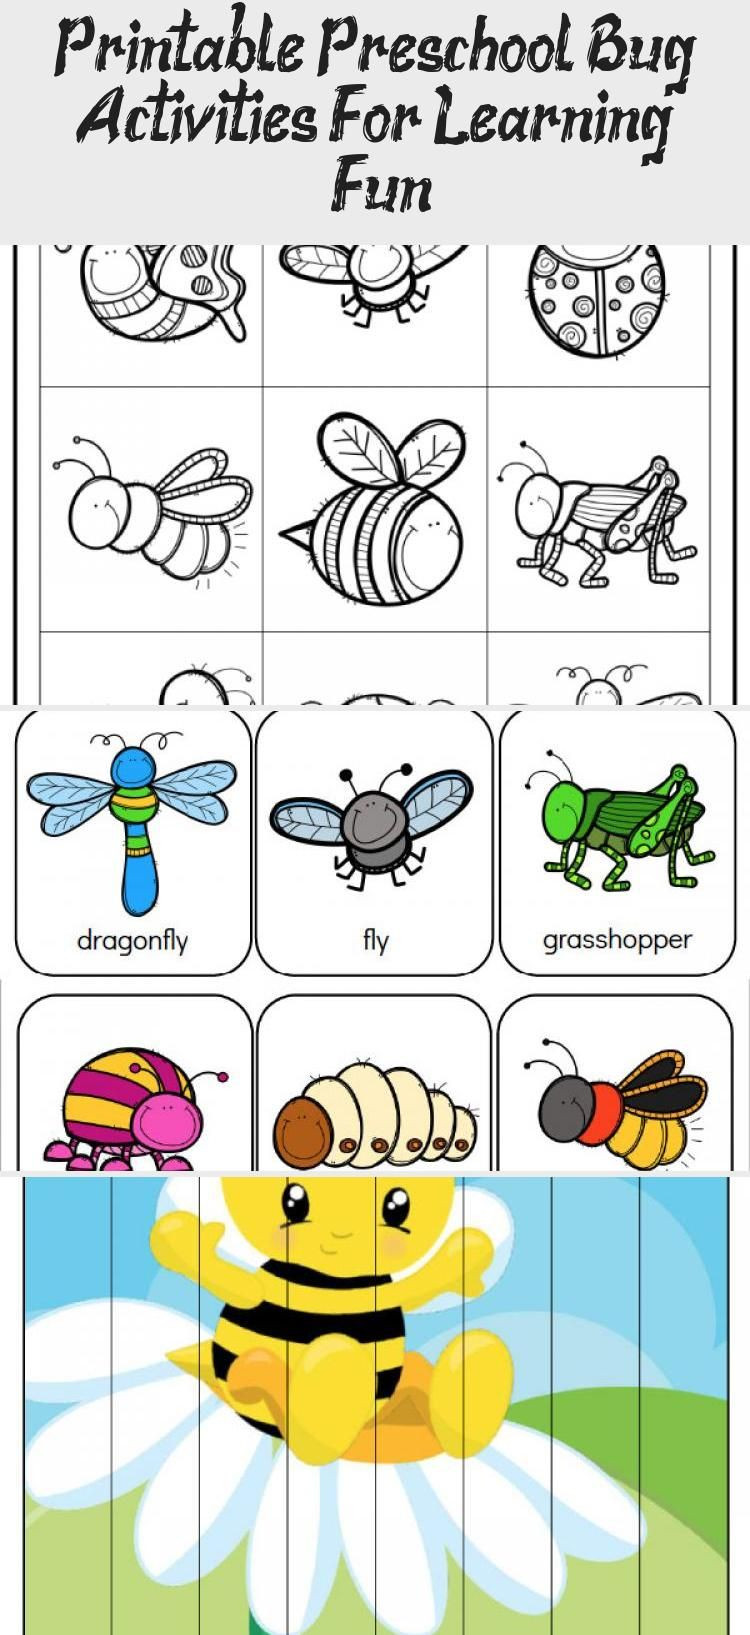 Preschool Bug Worksheets Printable Preschool Bug Activities for Learning & Fun In